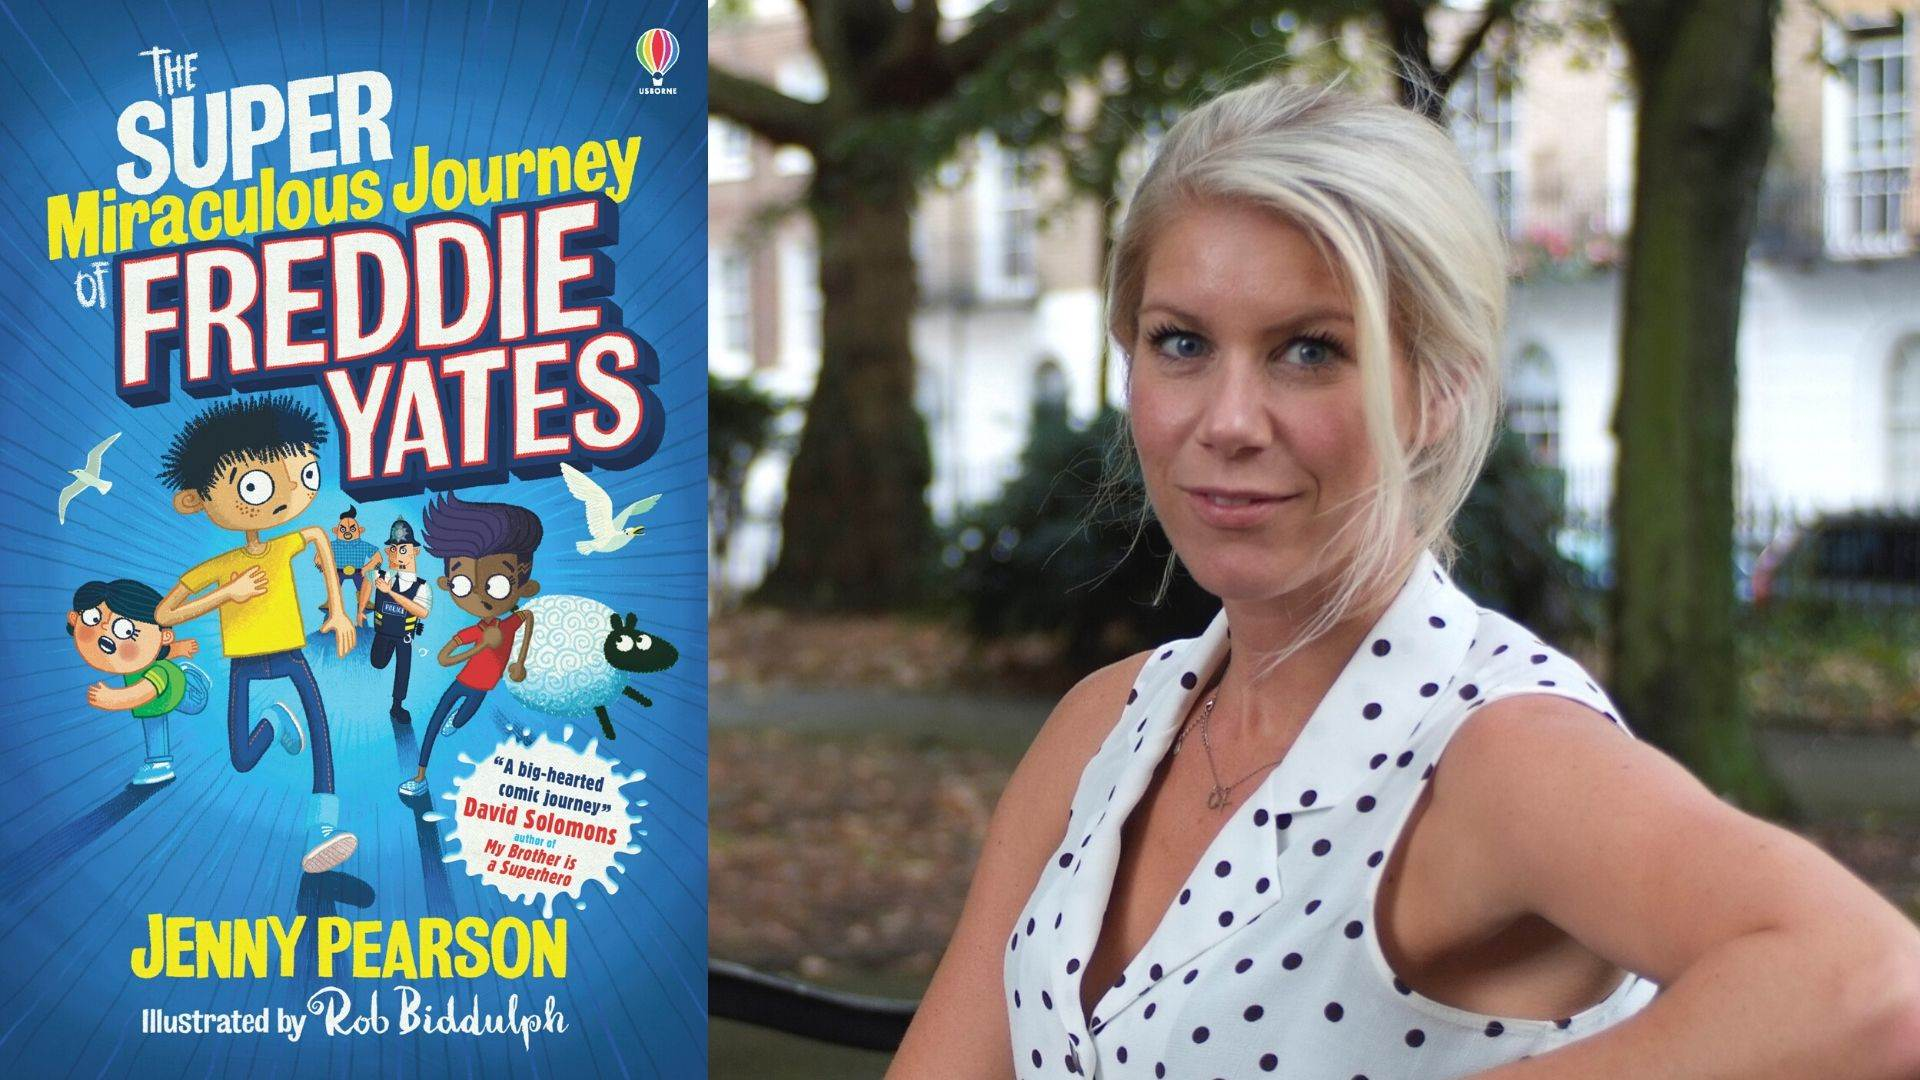 Author Jenny Pearson and the cover of The Super Miraculous Journey of Freddie Yates